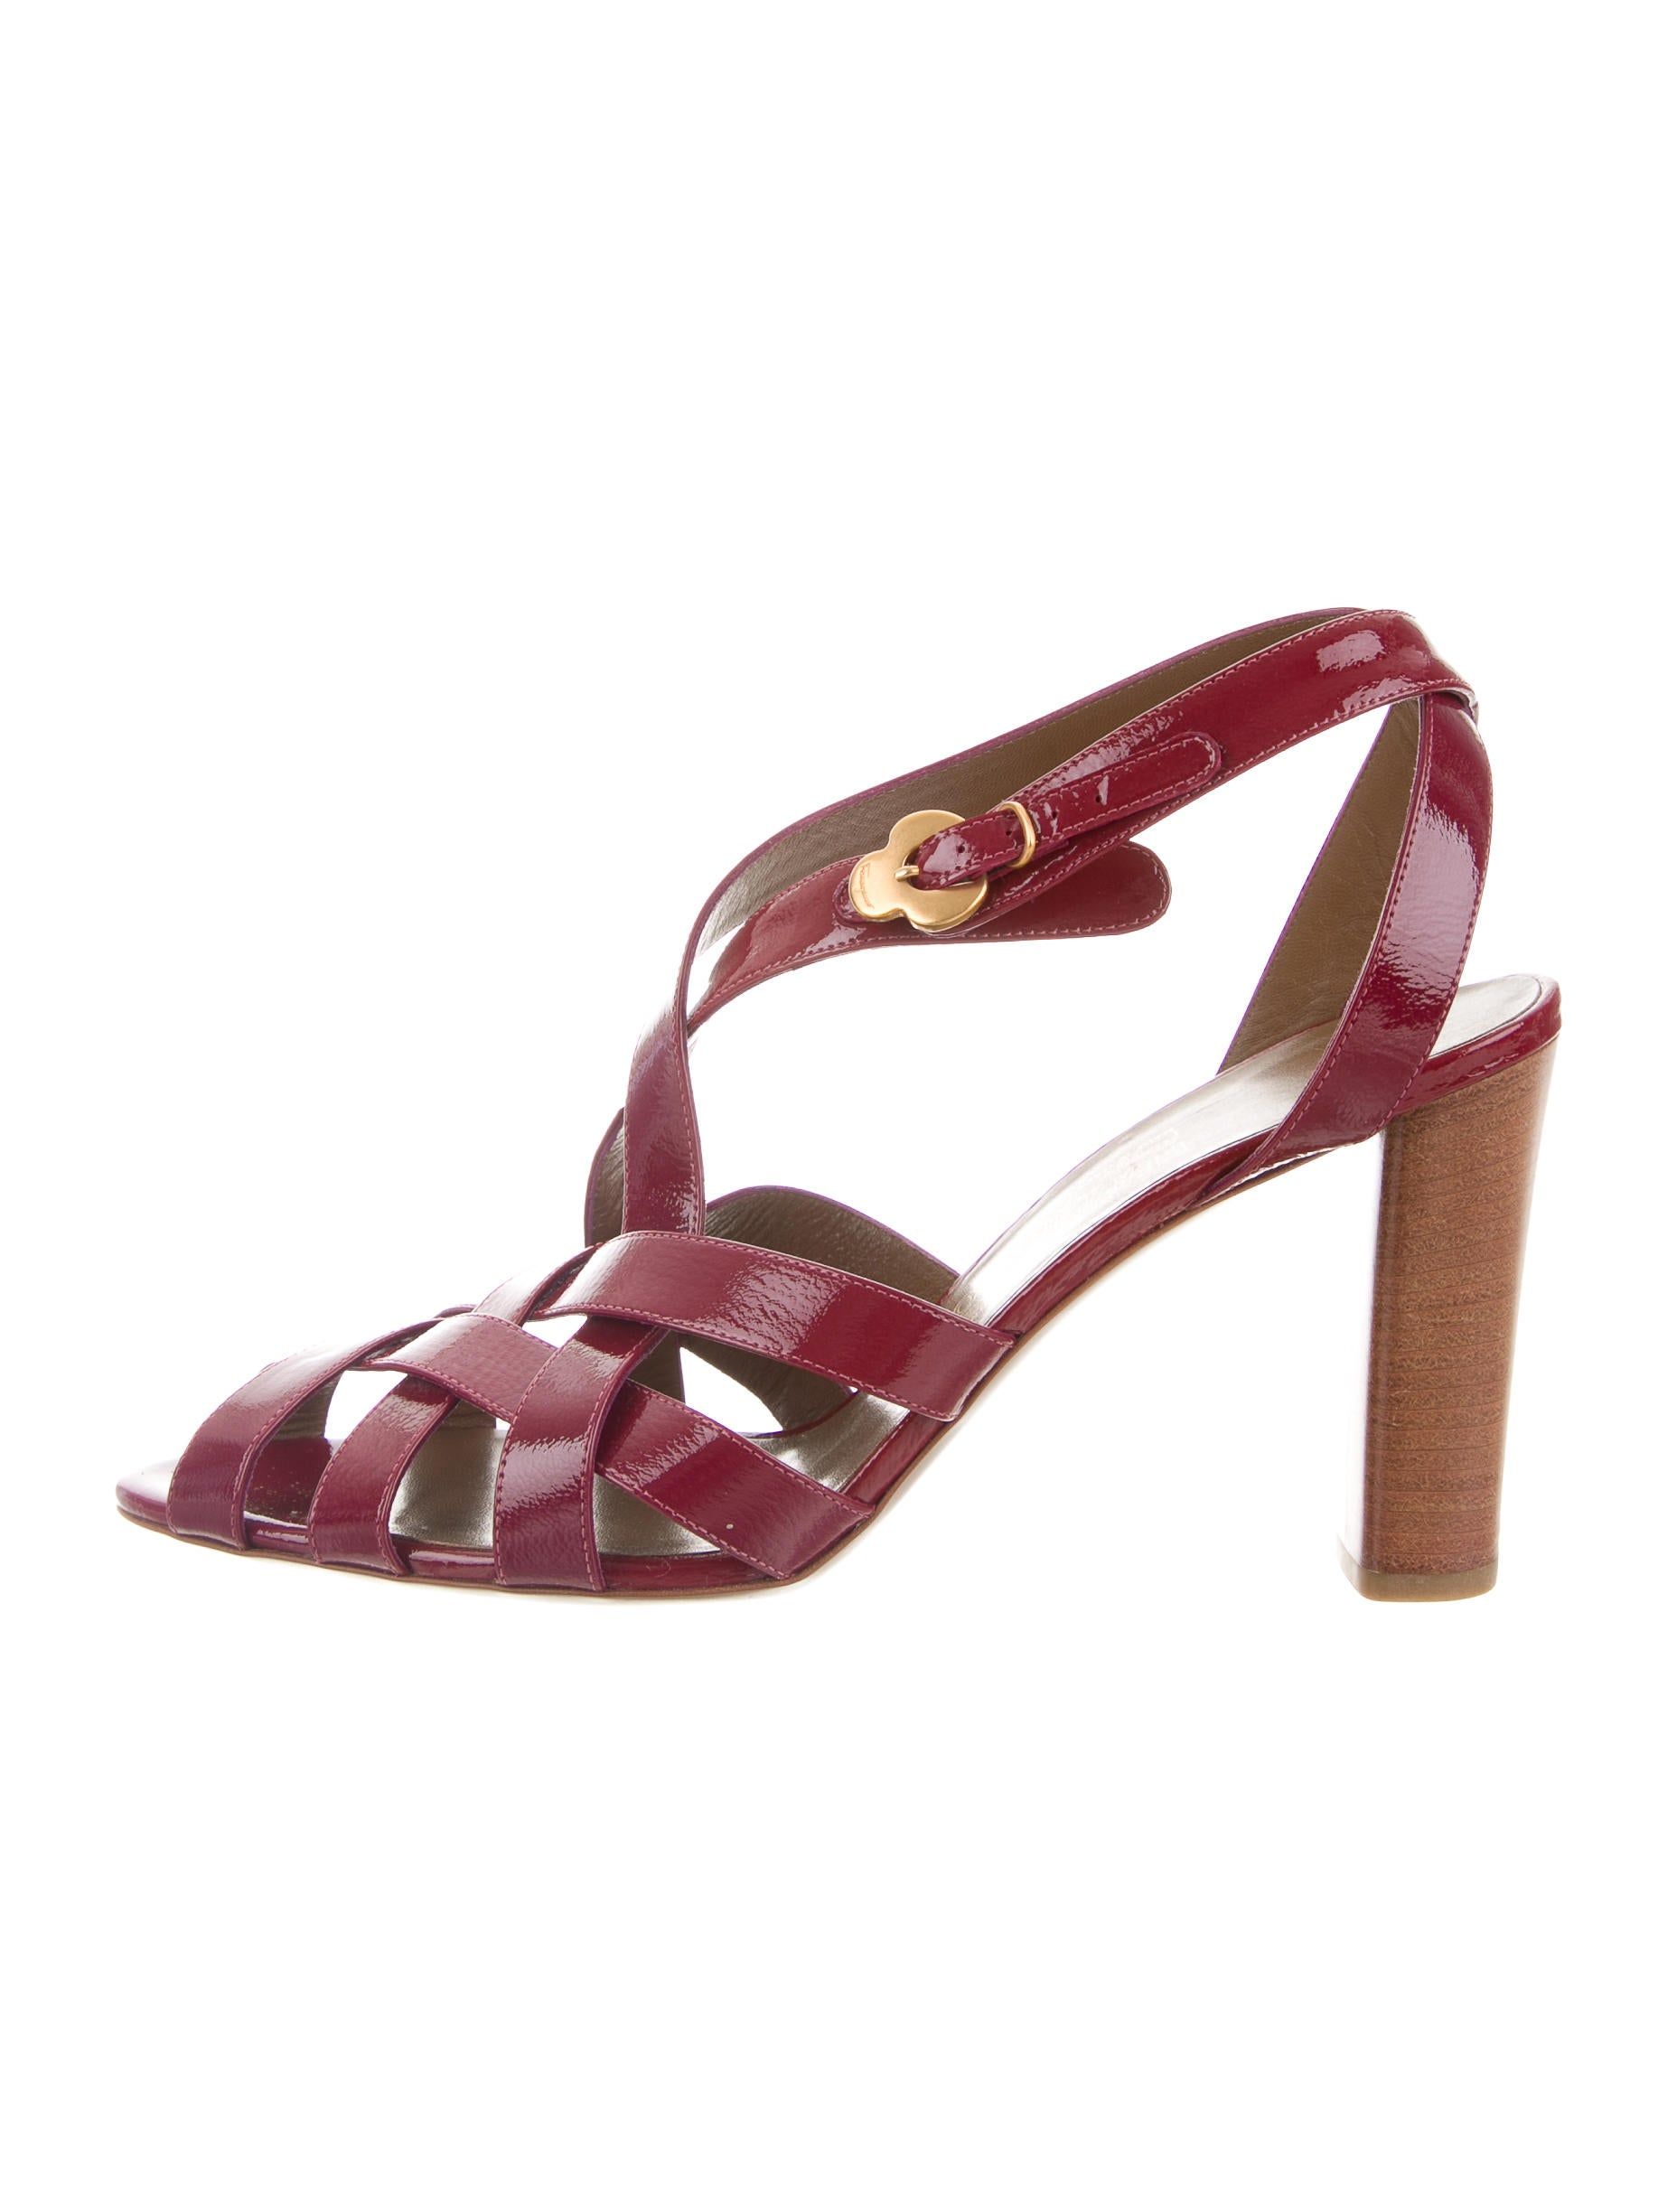 Salvatore Ferragamo Multistrap Leather Sandals